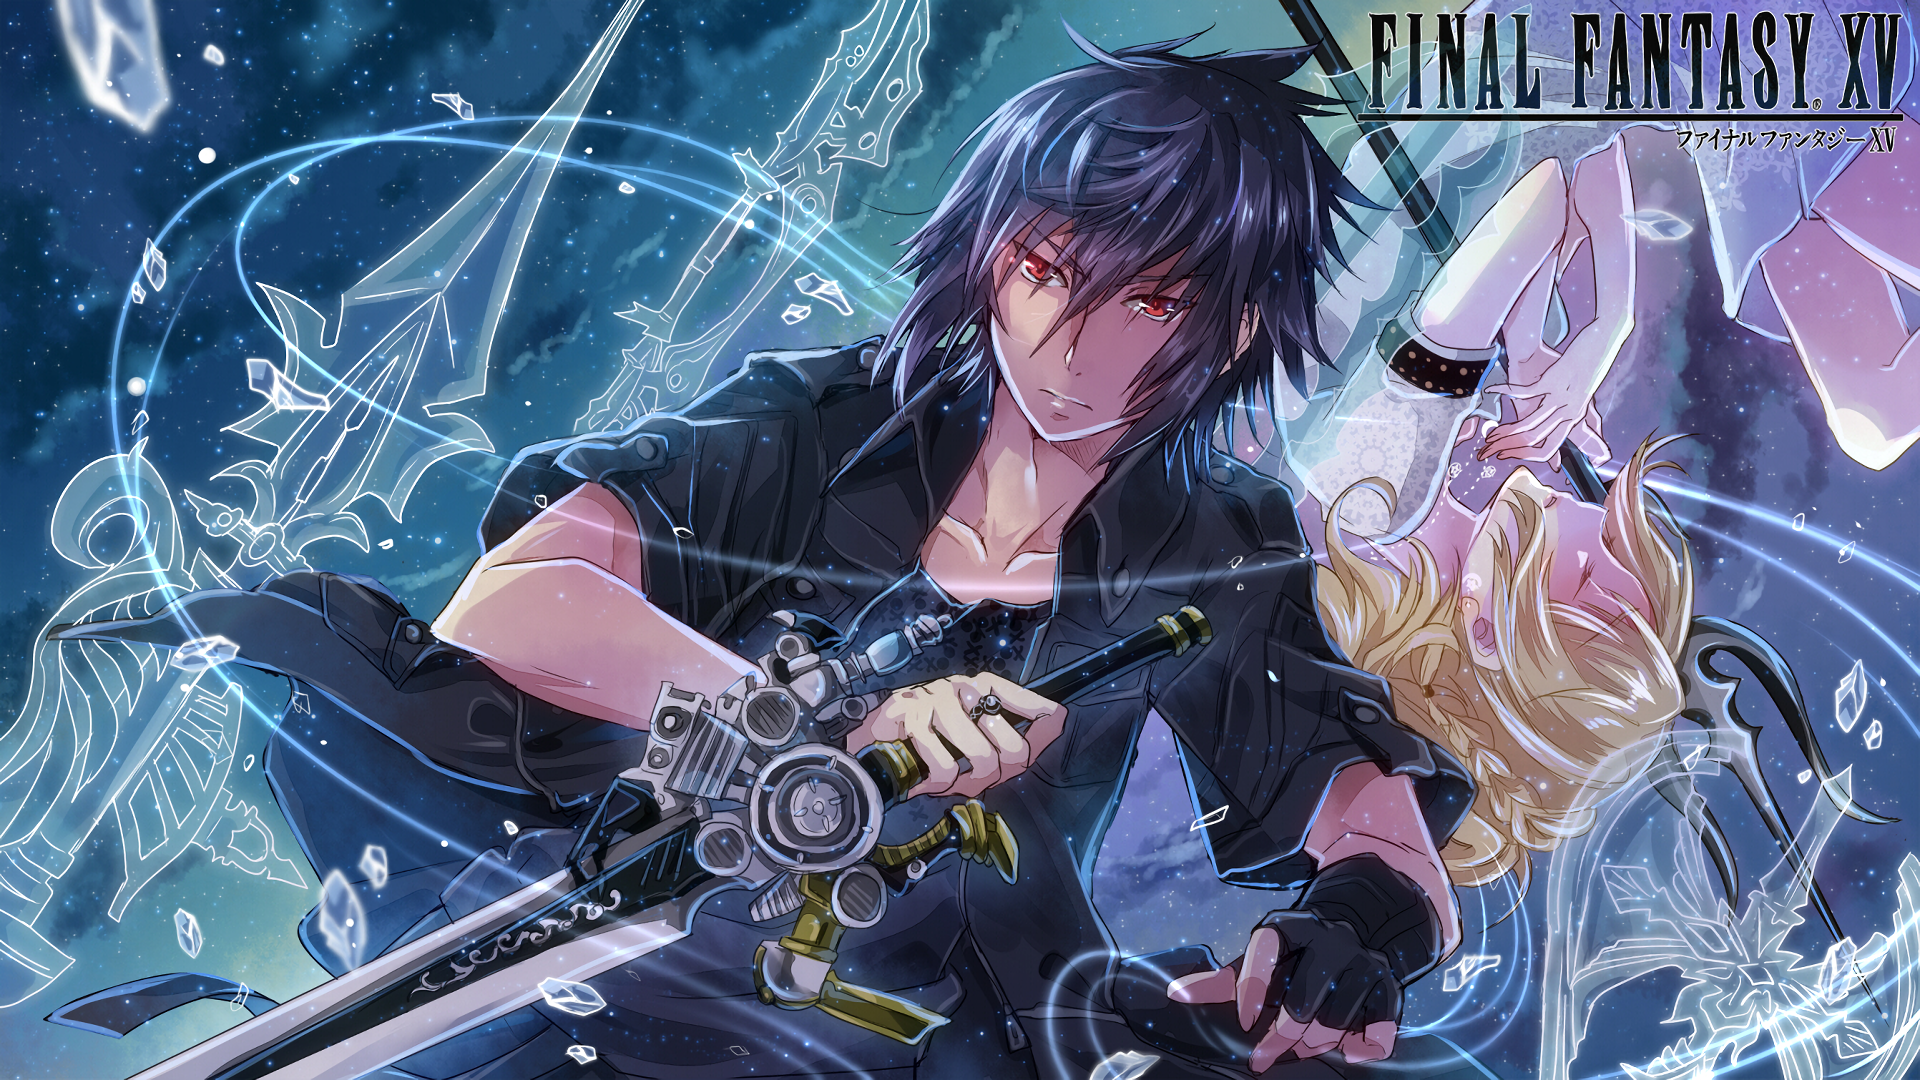 Final Fantasy Xv Wallpaper 78 Images: Final Fantasy XV HD Wallpaper